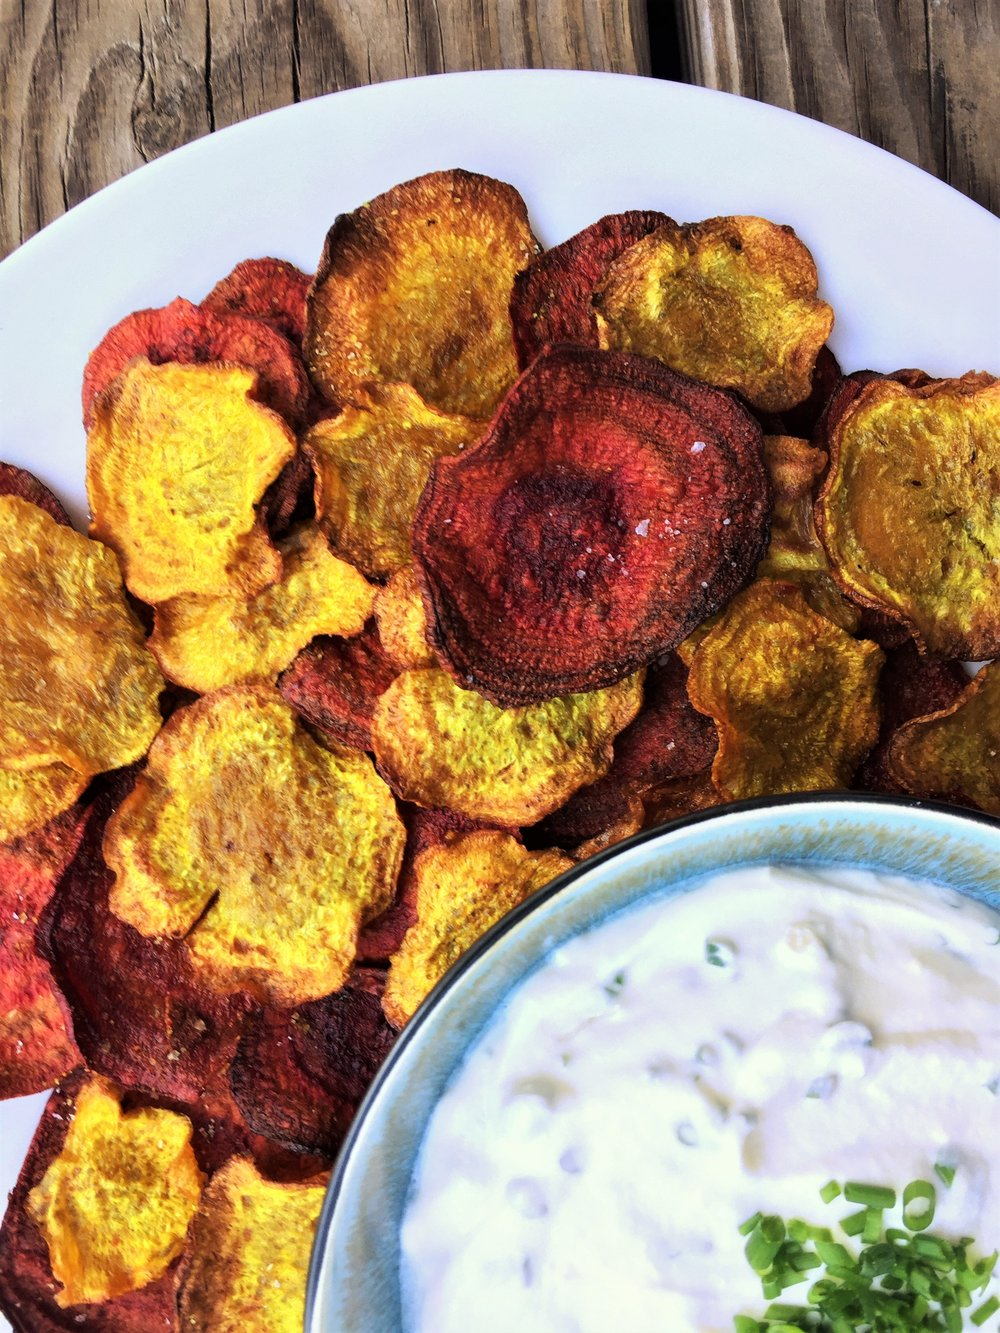 These Curried Beet Chips are ready to scoop up some of that creamy goat cheese dip.